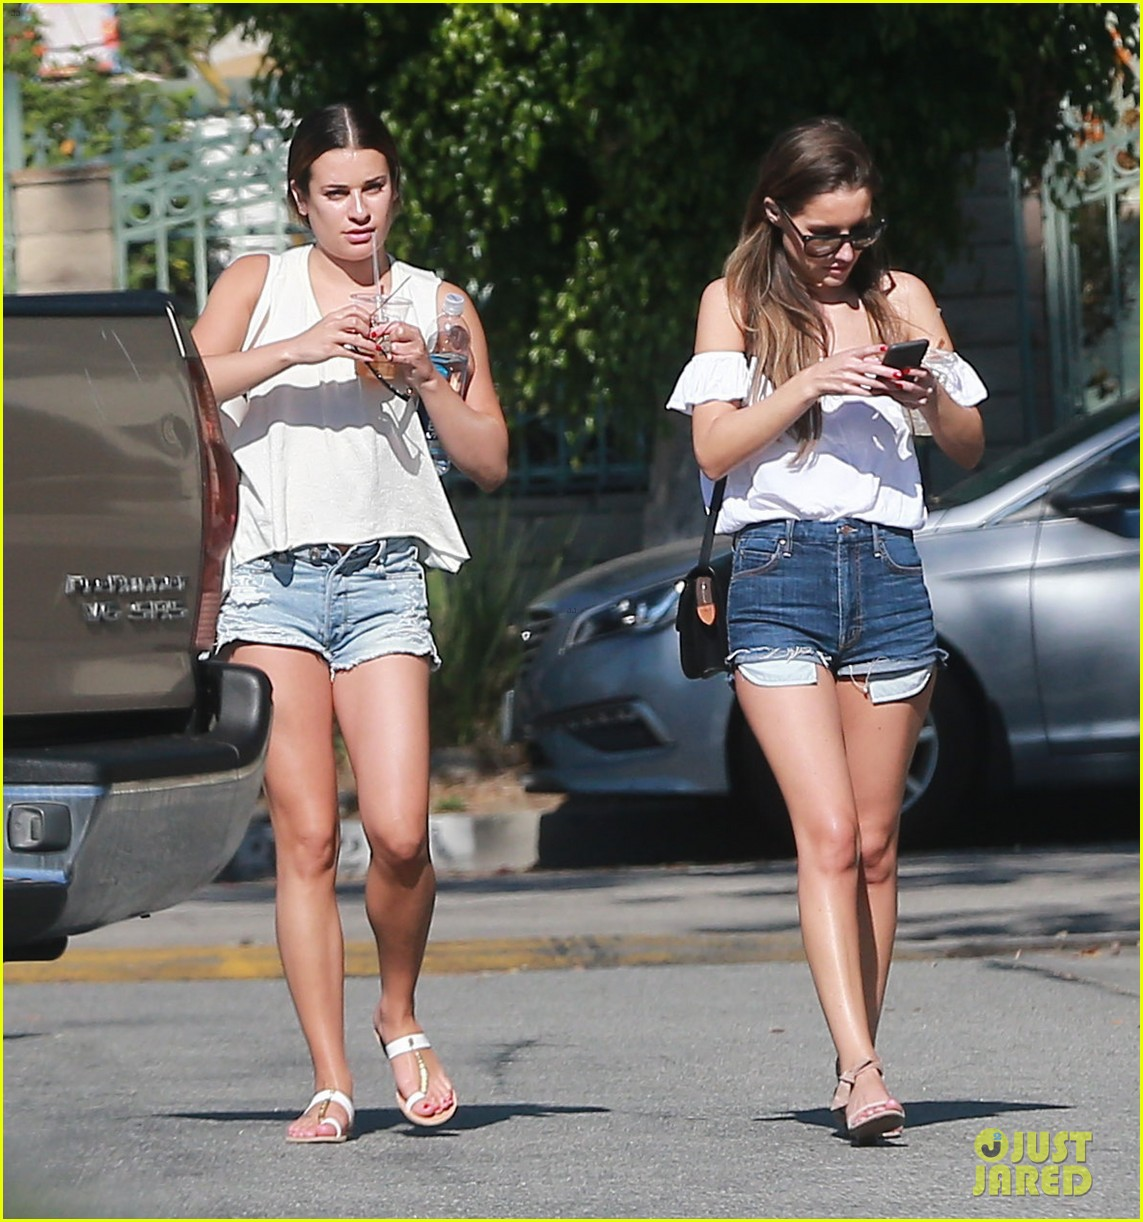 lea michele gets in girl time at the spa | photo 987017 - photo